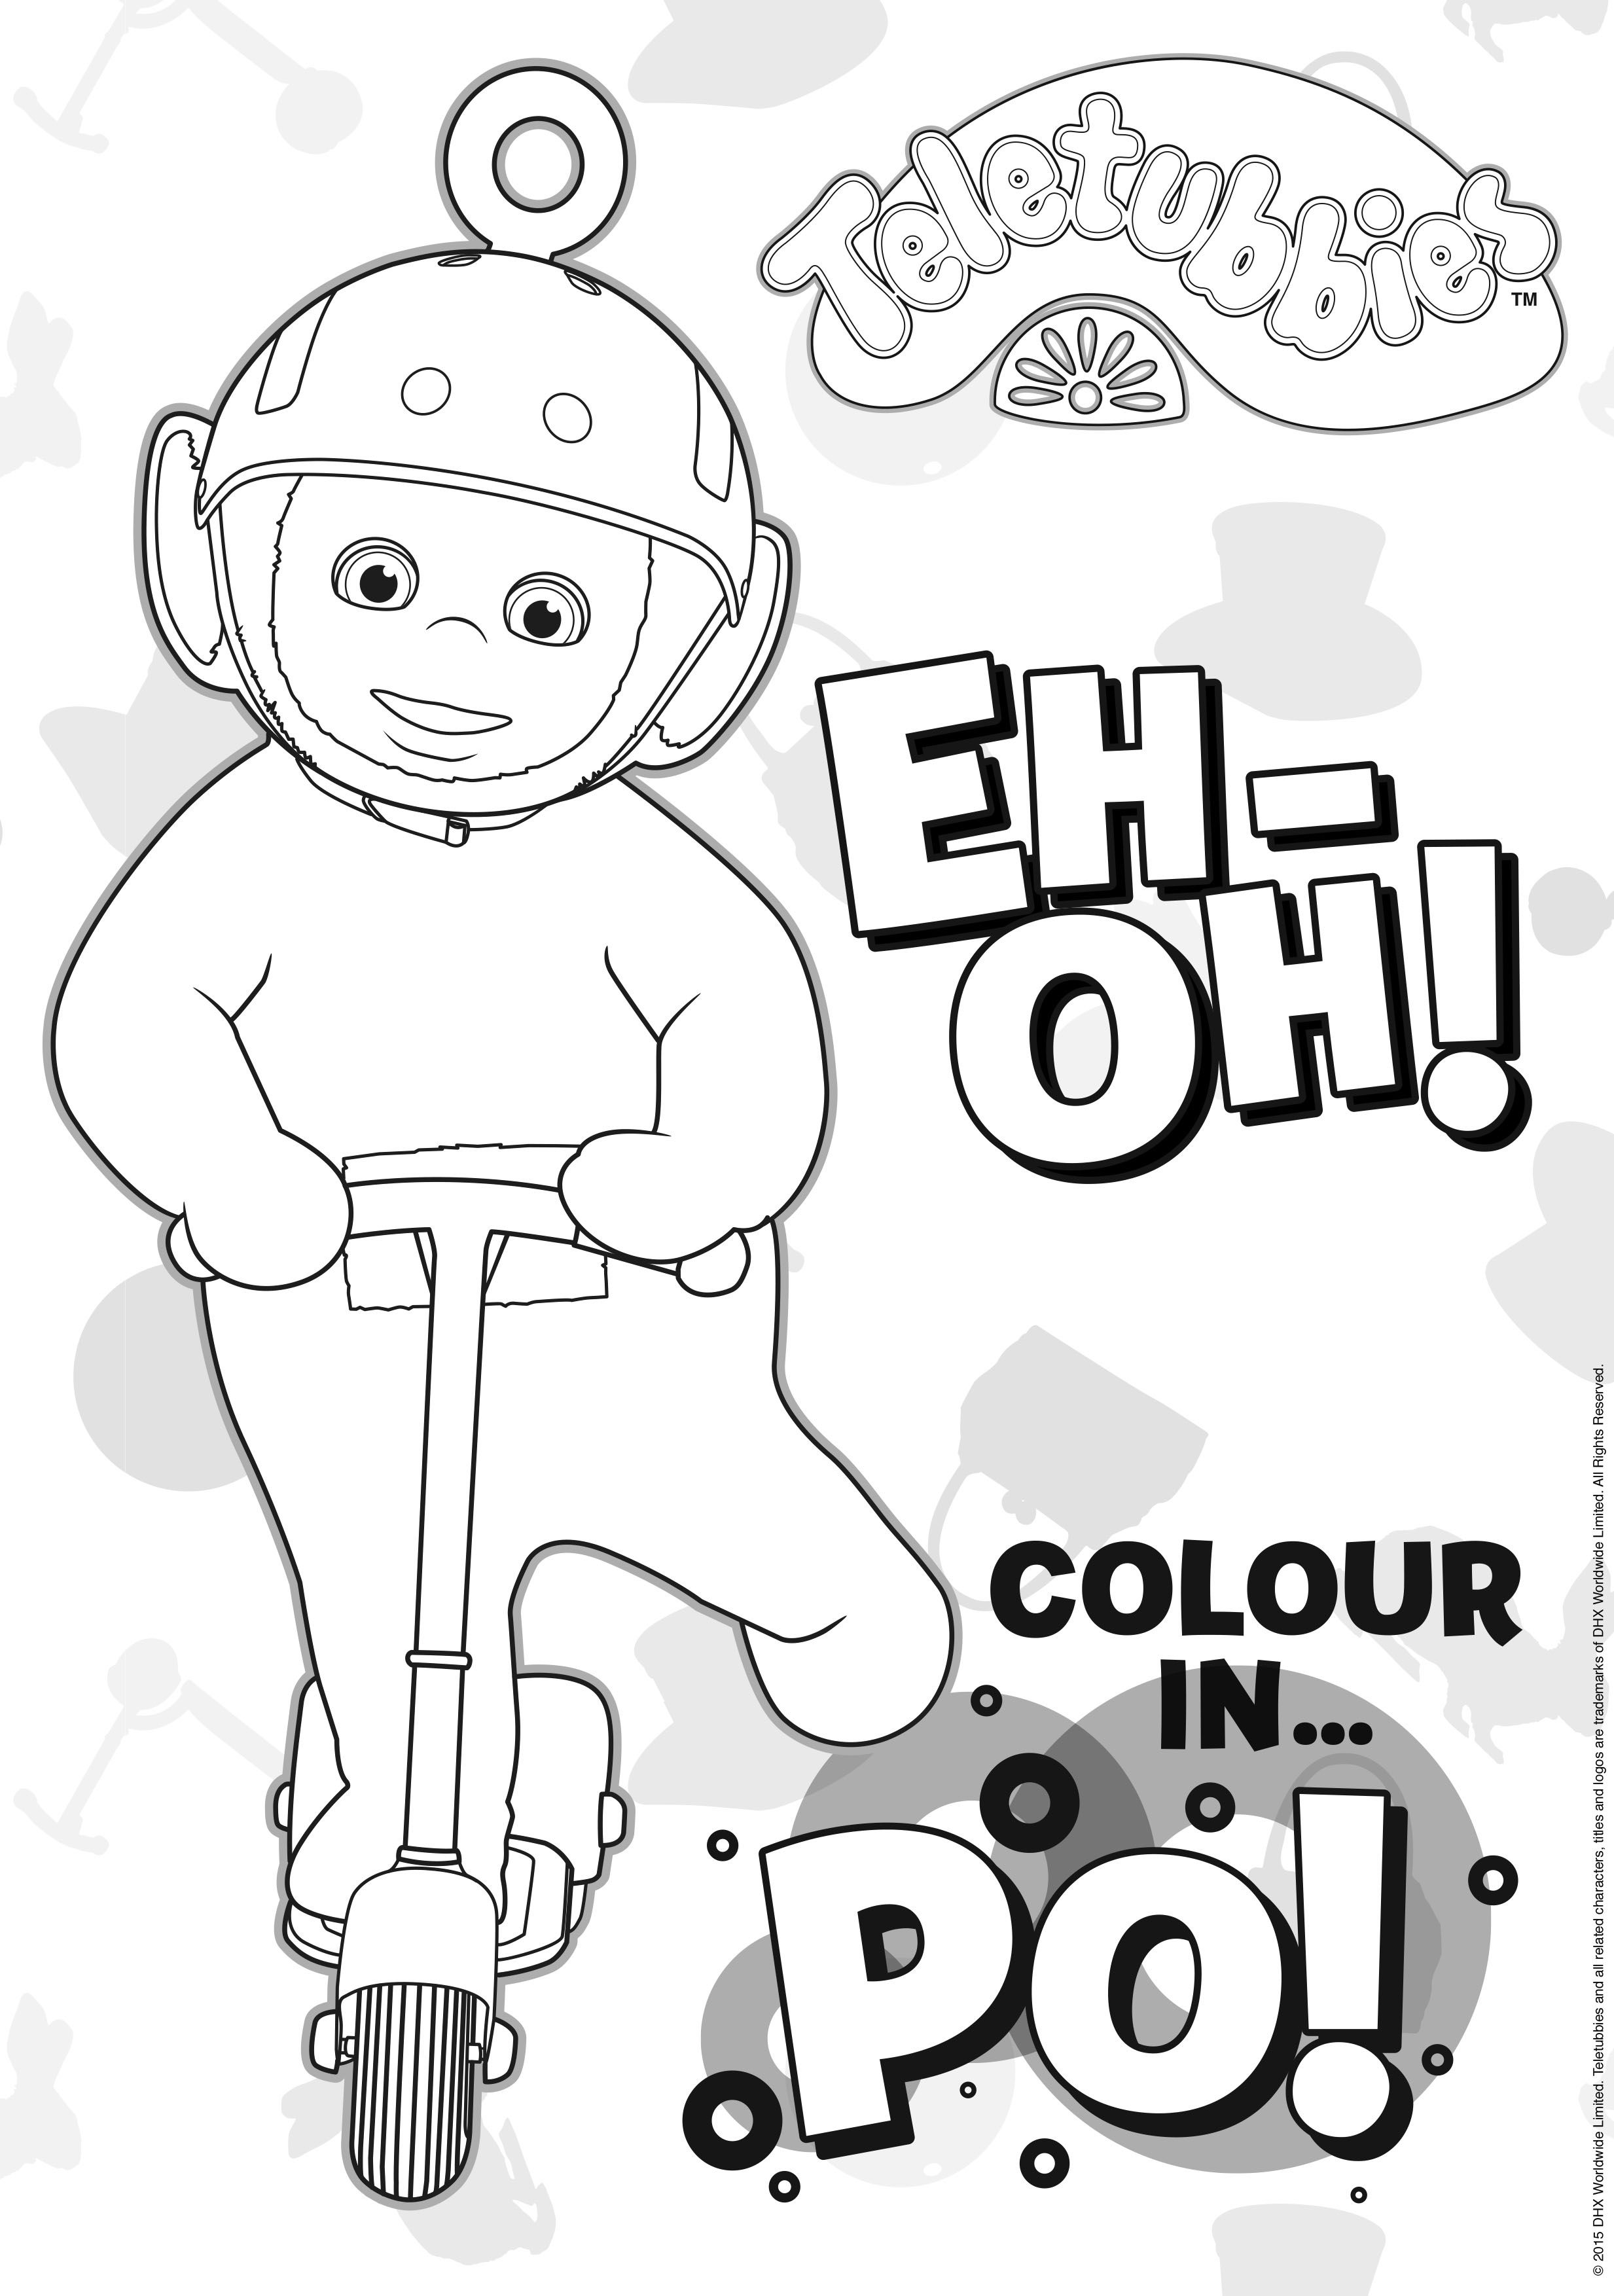 Let\'s get colouring-in Po! Have you printed all of the #Teletubbies ...